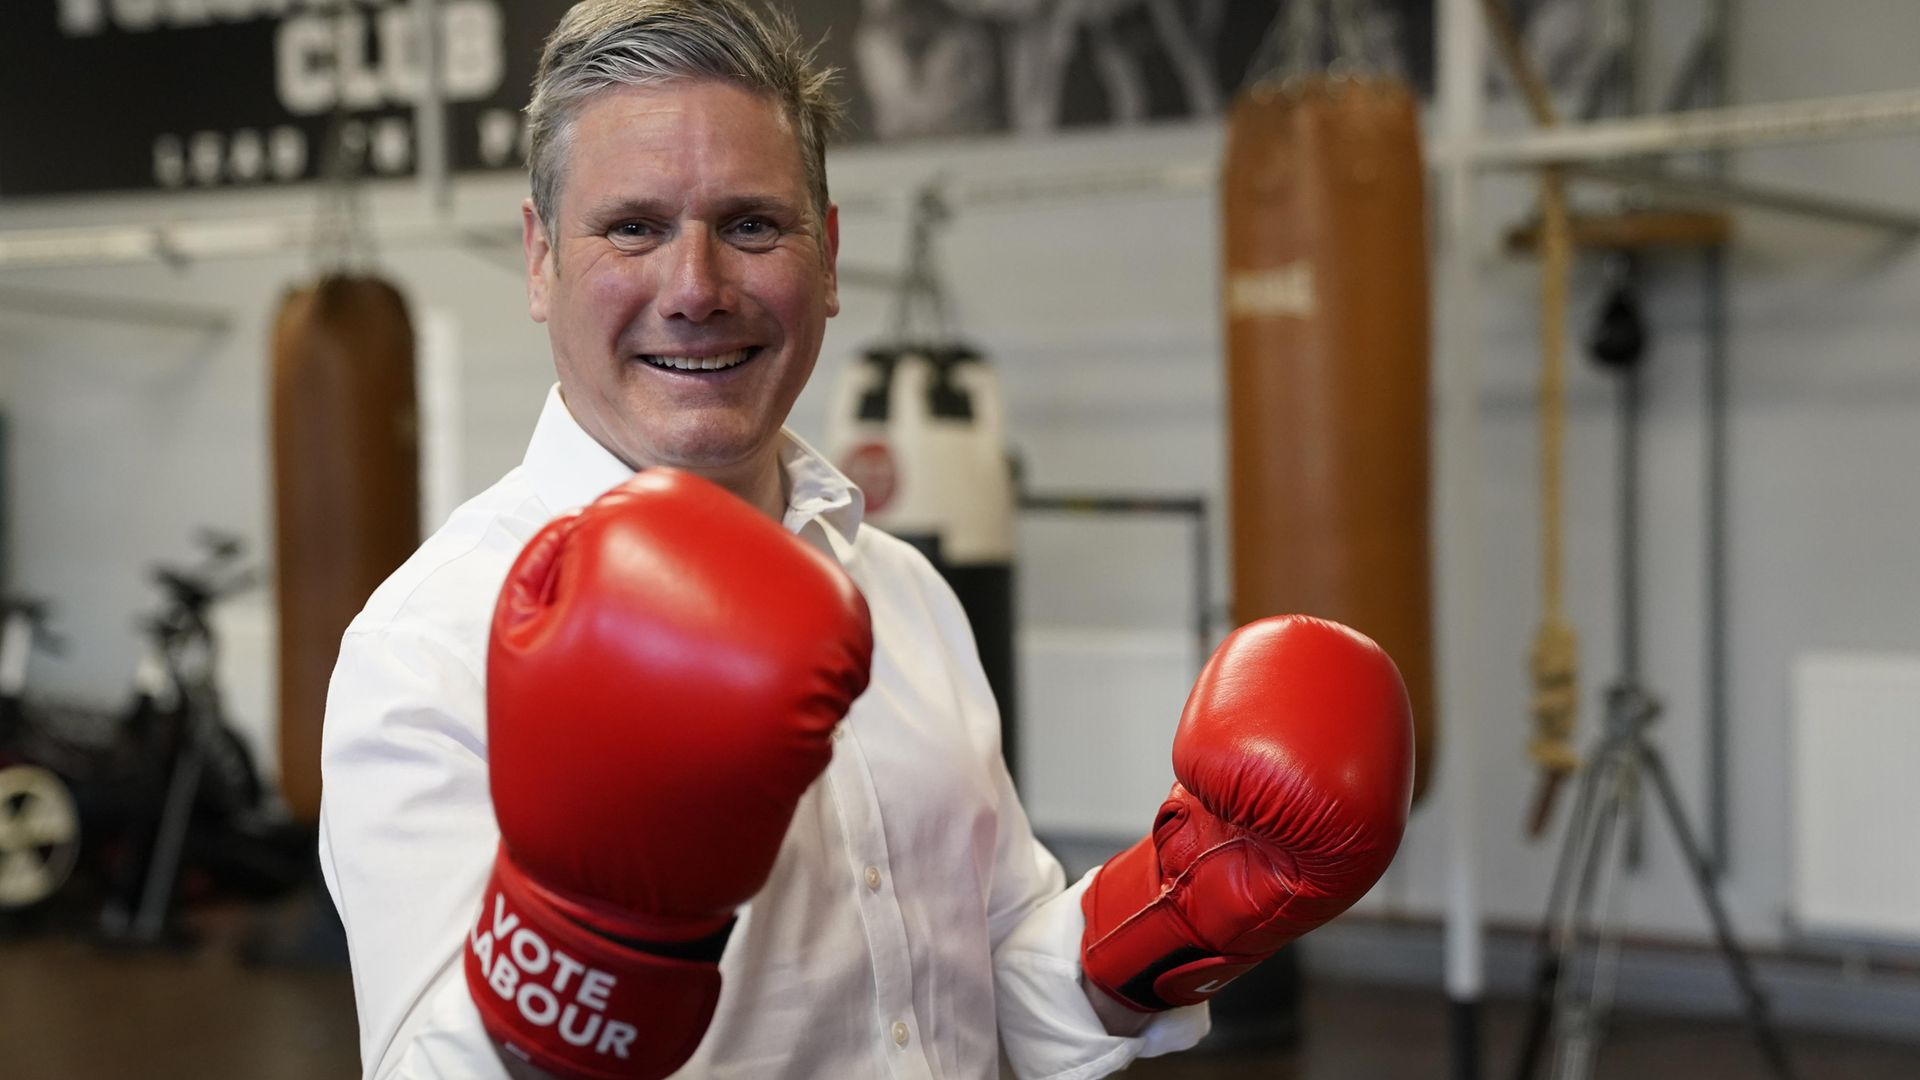 Labour leader Keir Starmer during a visit to the Vulcan Boxing Club in Hull, East Yorkshire - Credit: PA